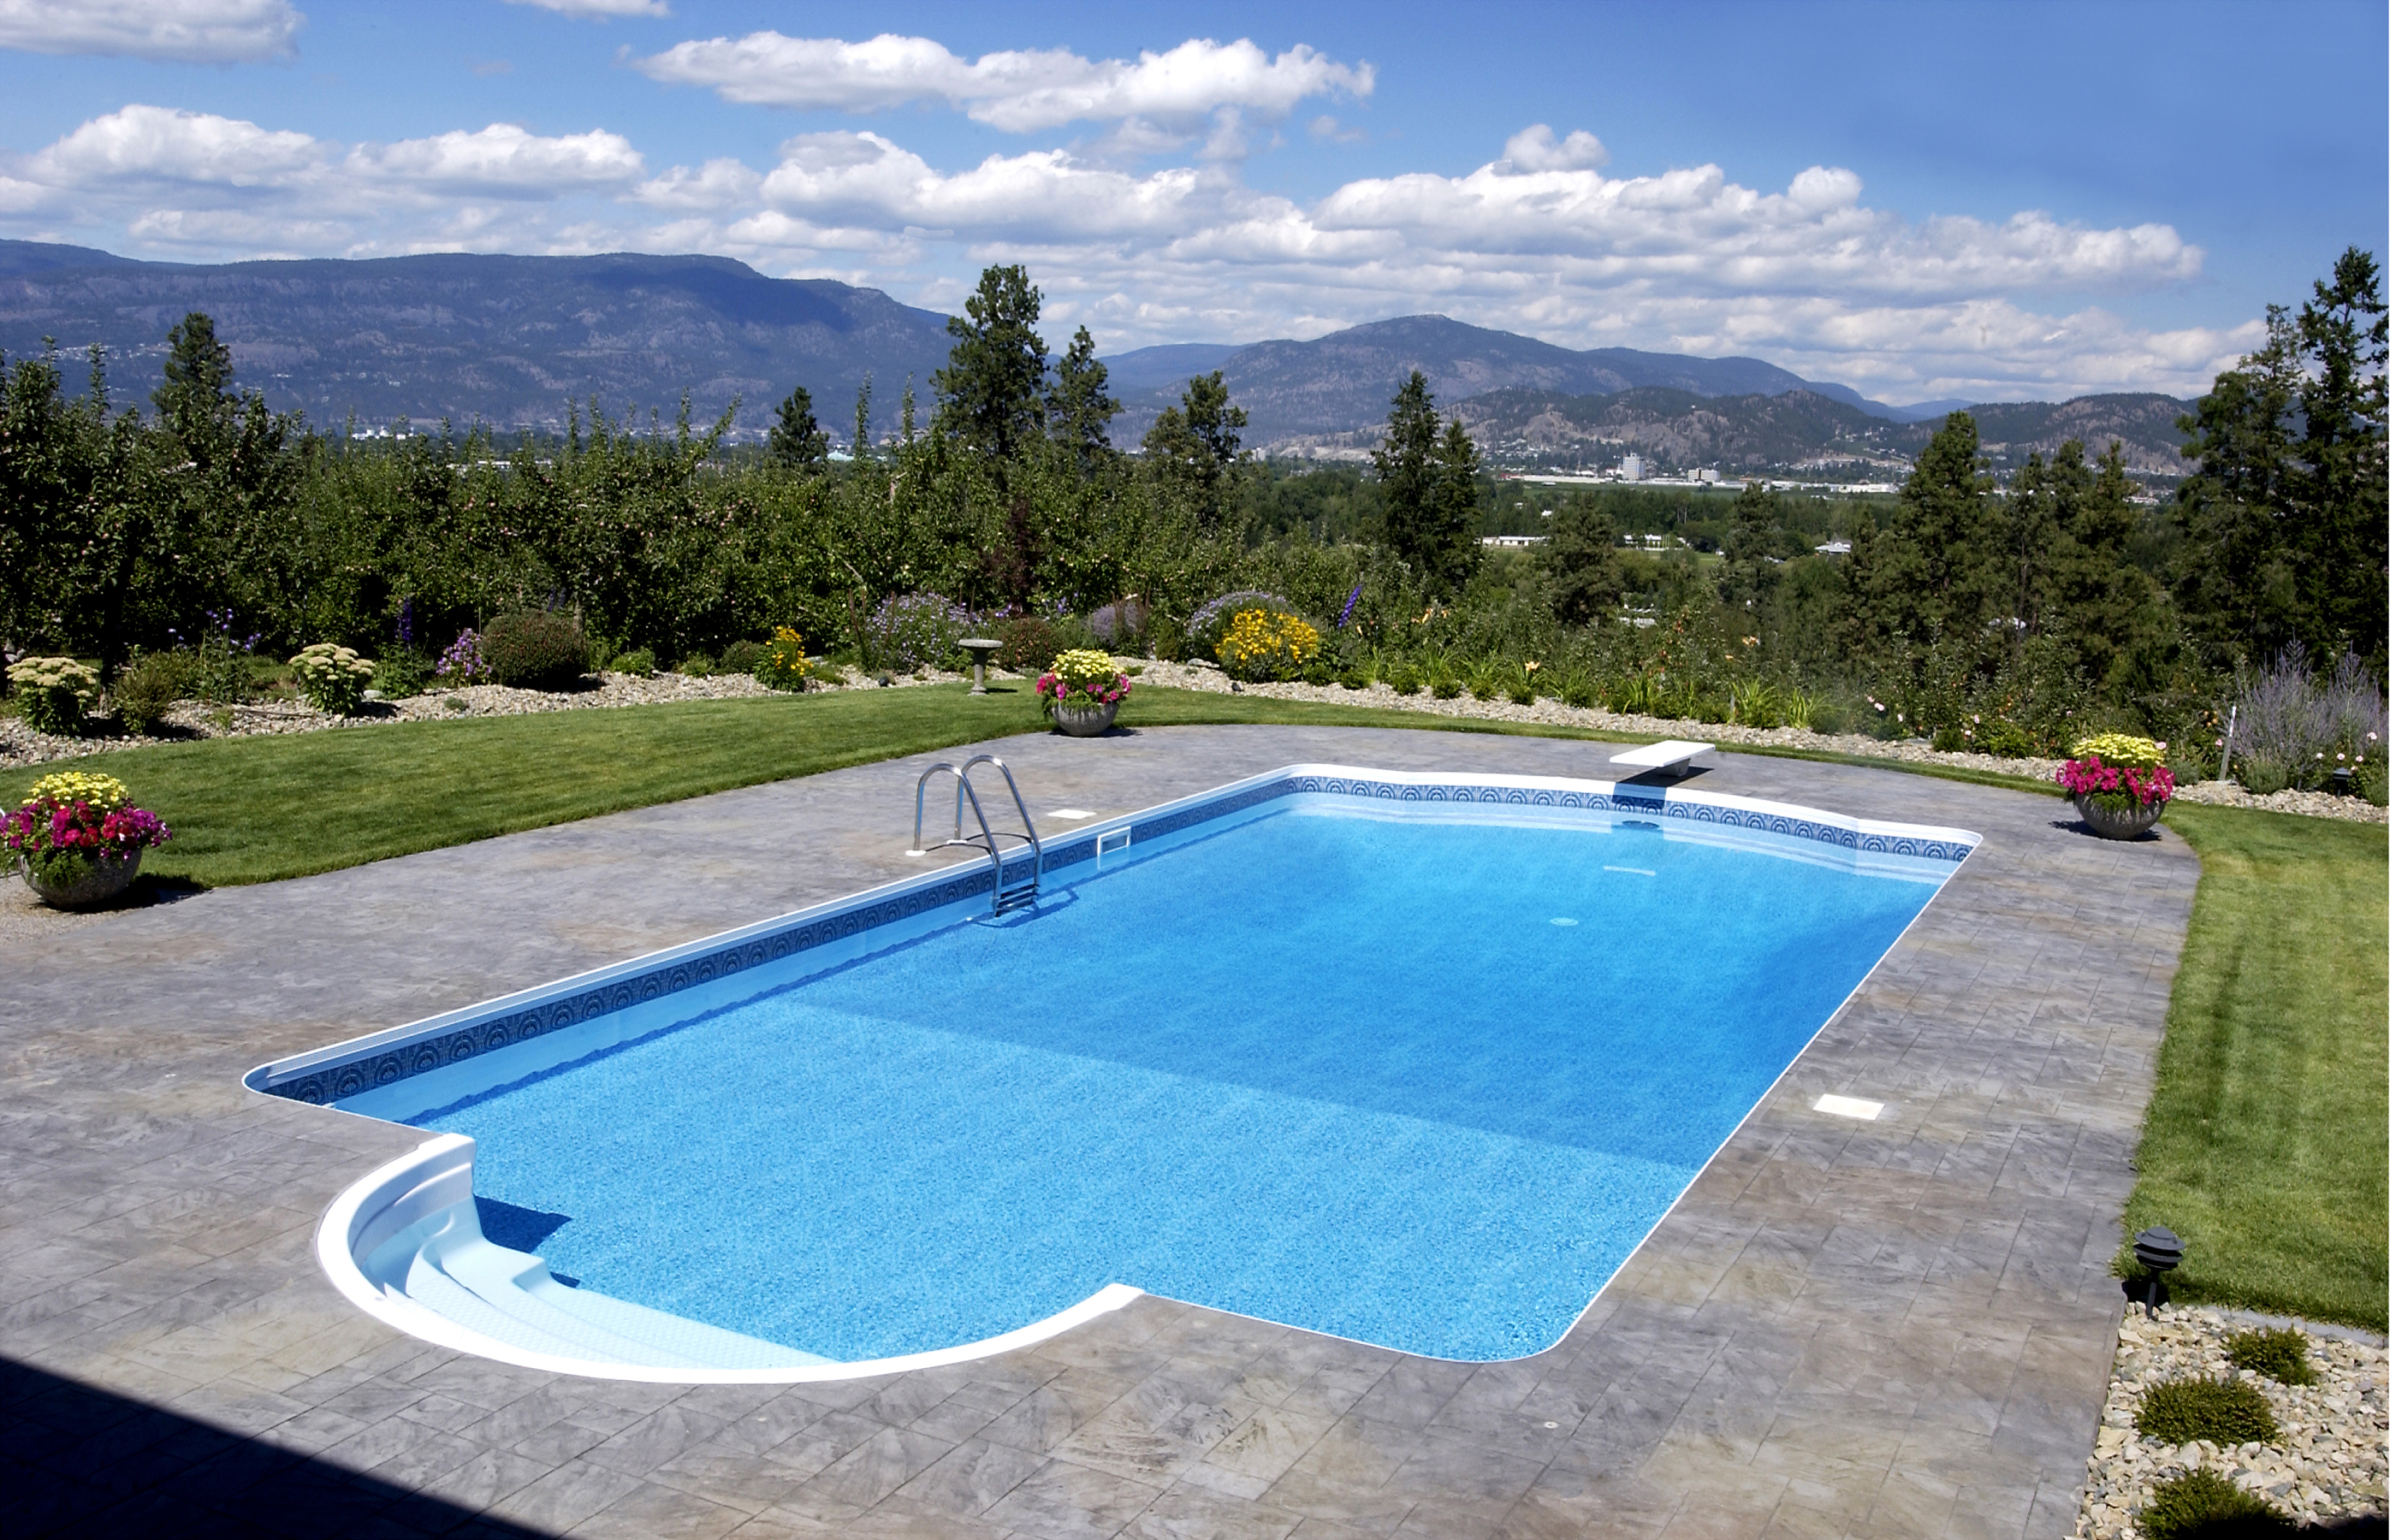 Swimming pool design for your beautiful yard homesfeed for Swimming pool plans online